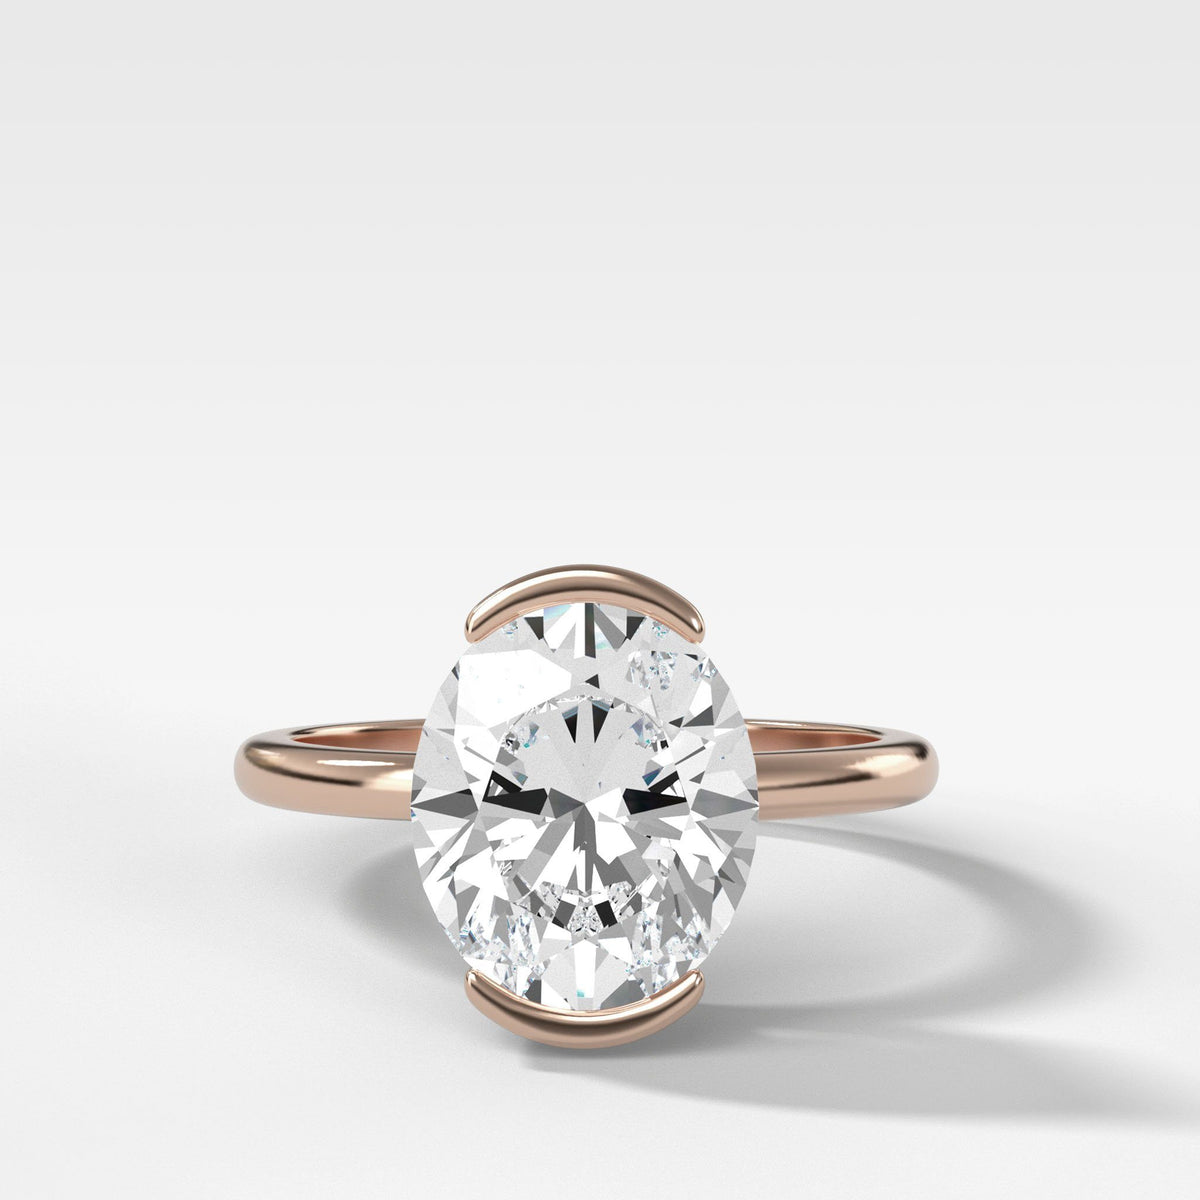 North South Half Bezel Solitaire Engagement Ring With Oval Cut In Rose Gold By Good Stone